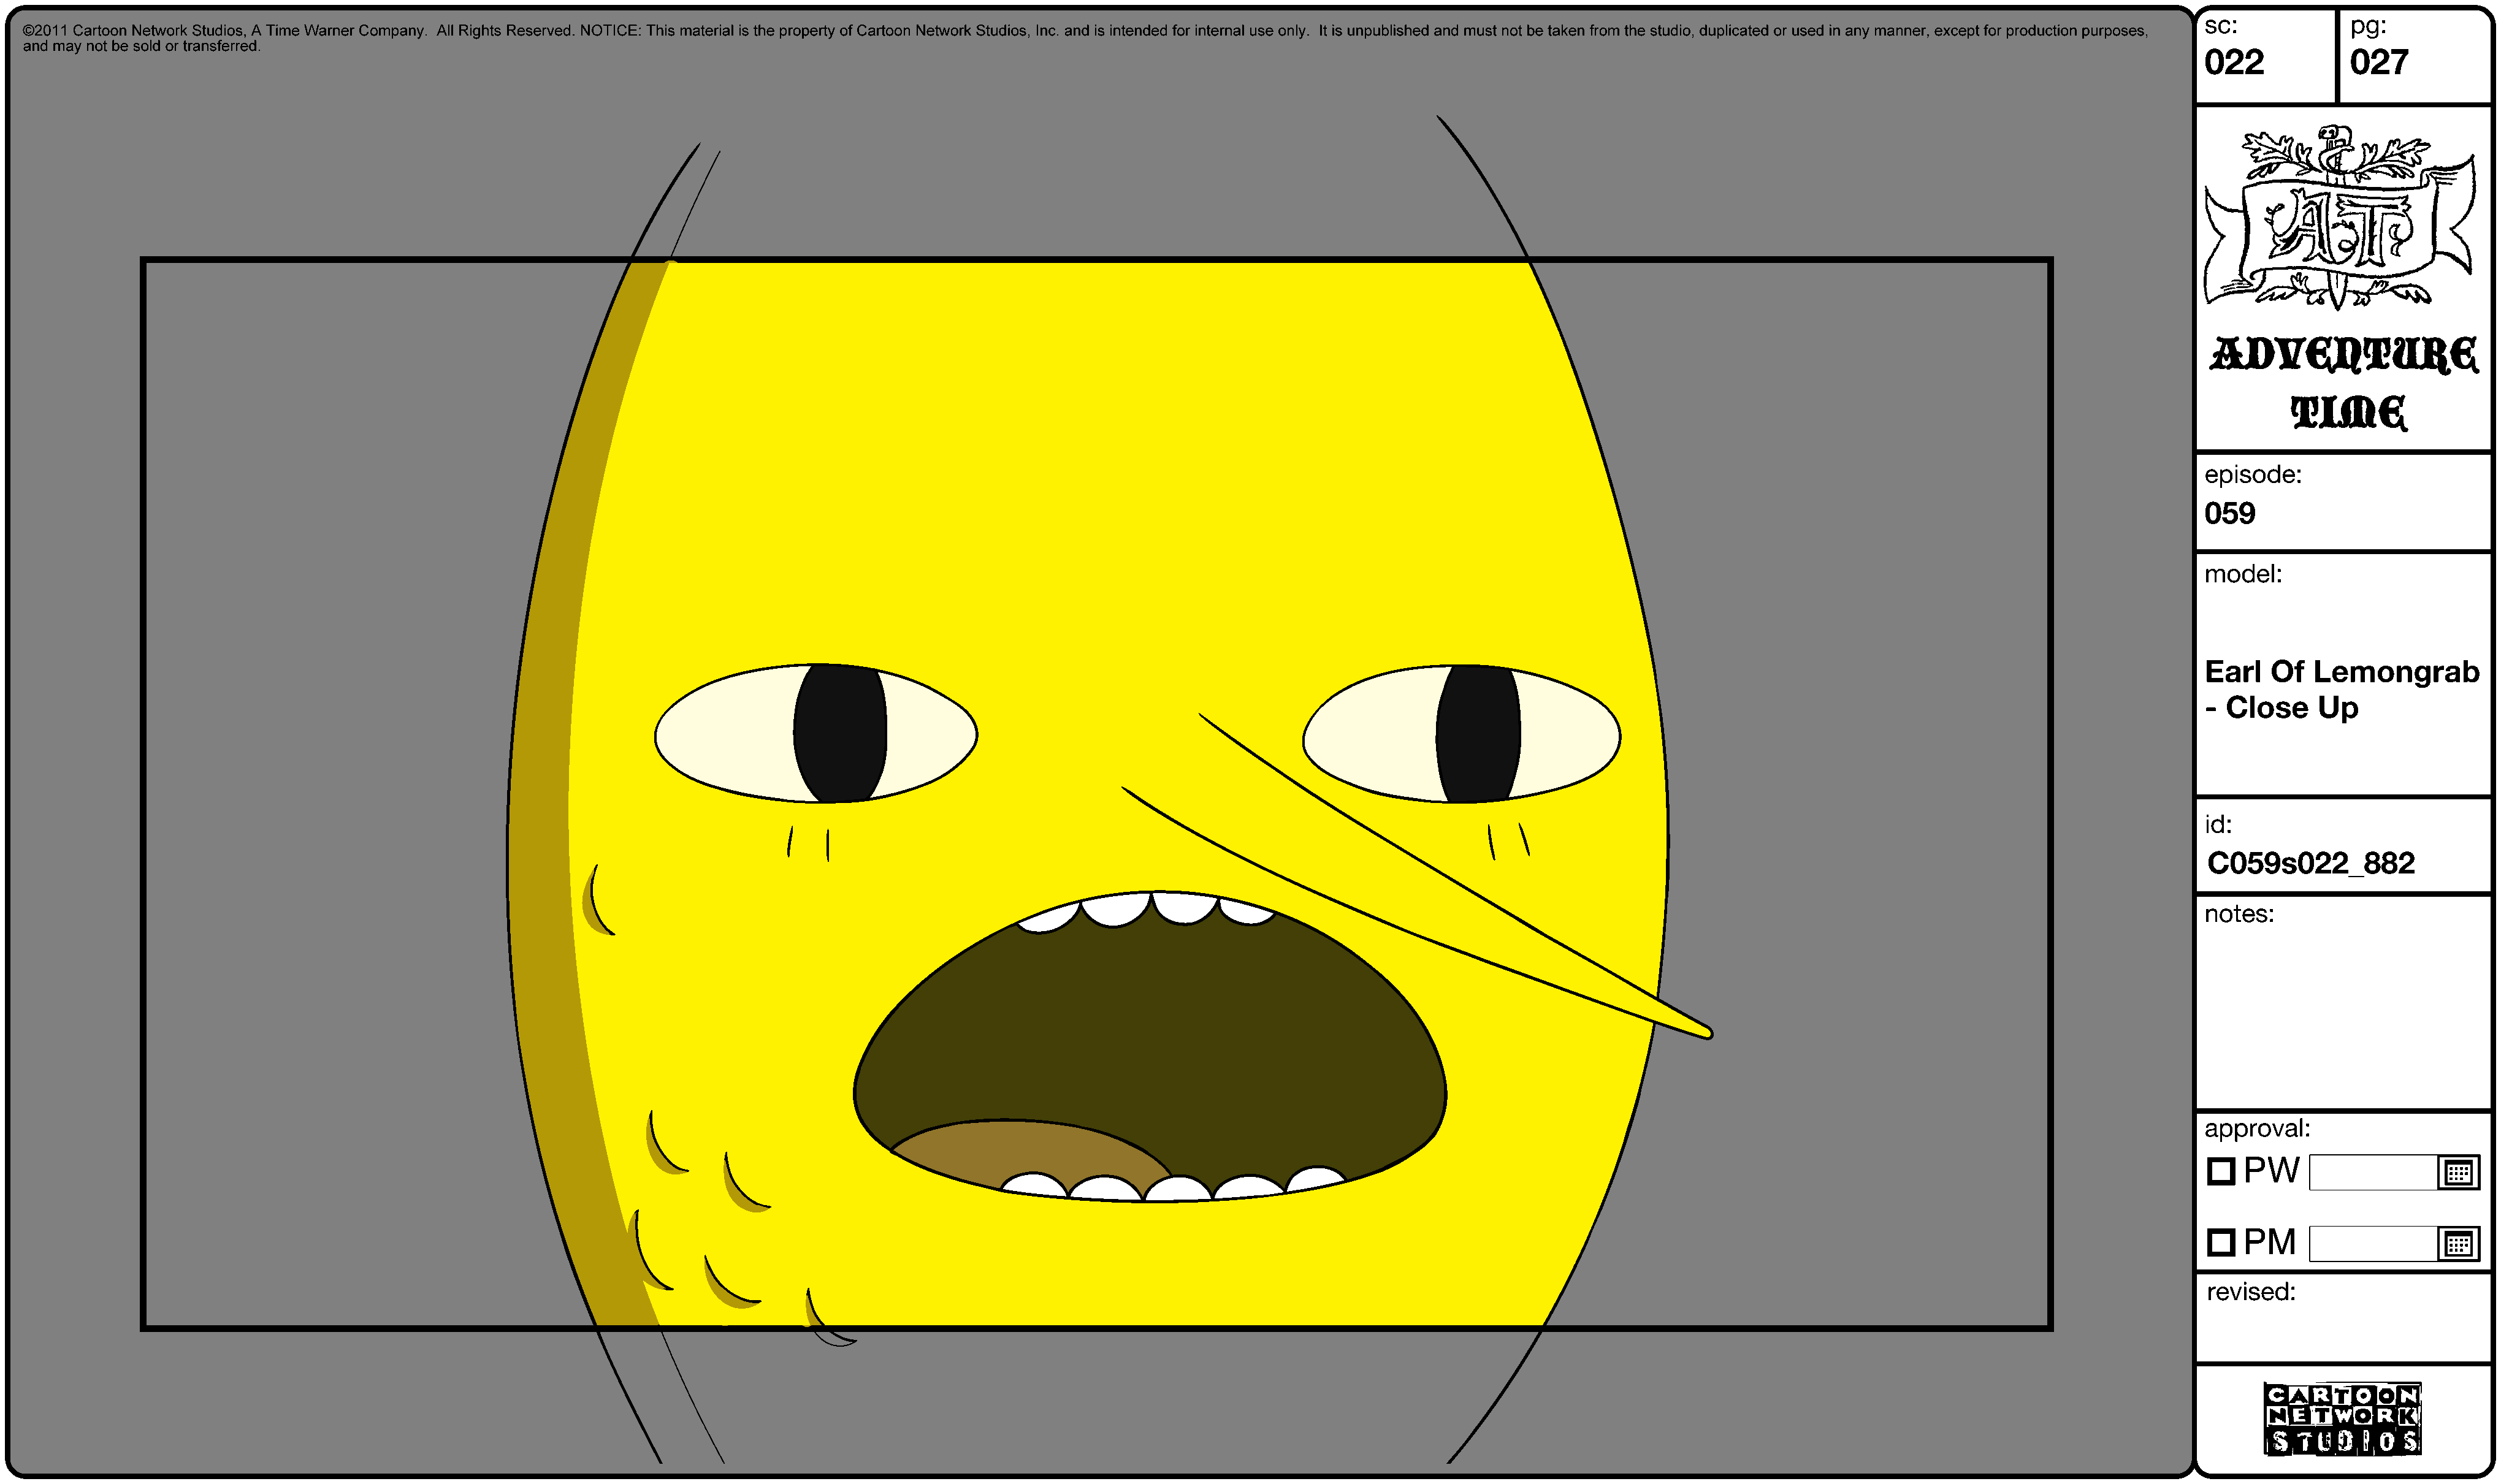 Earl of lemongrab adventure time wiki fandom powered by wikia gallery solutioingenieria Images